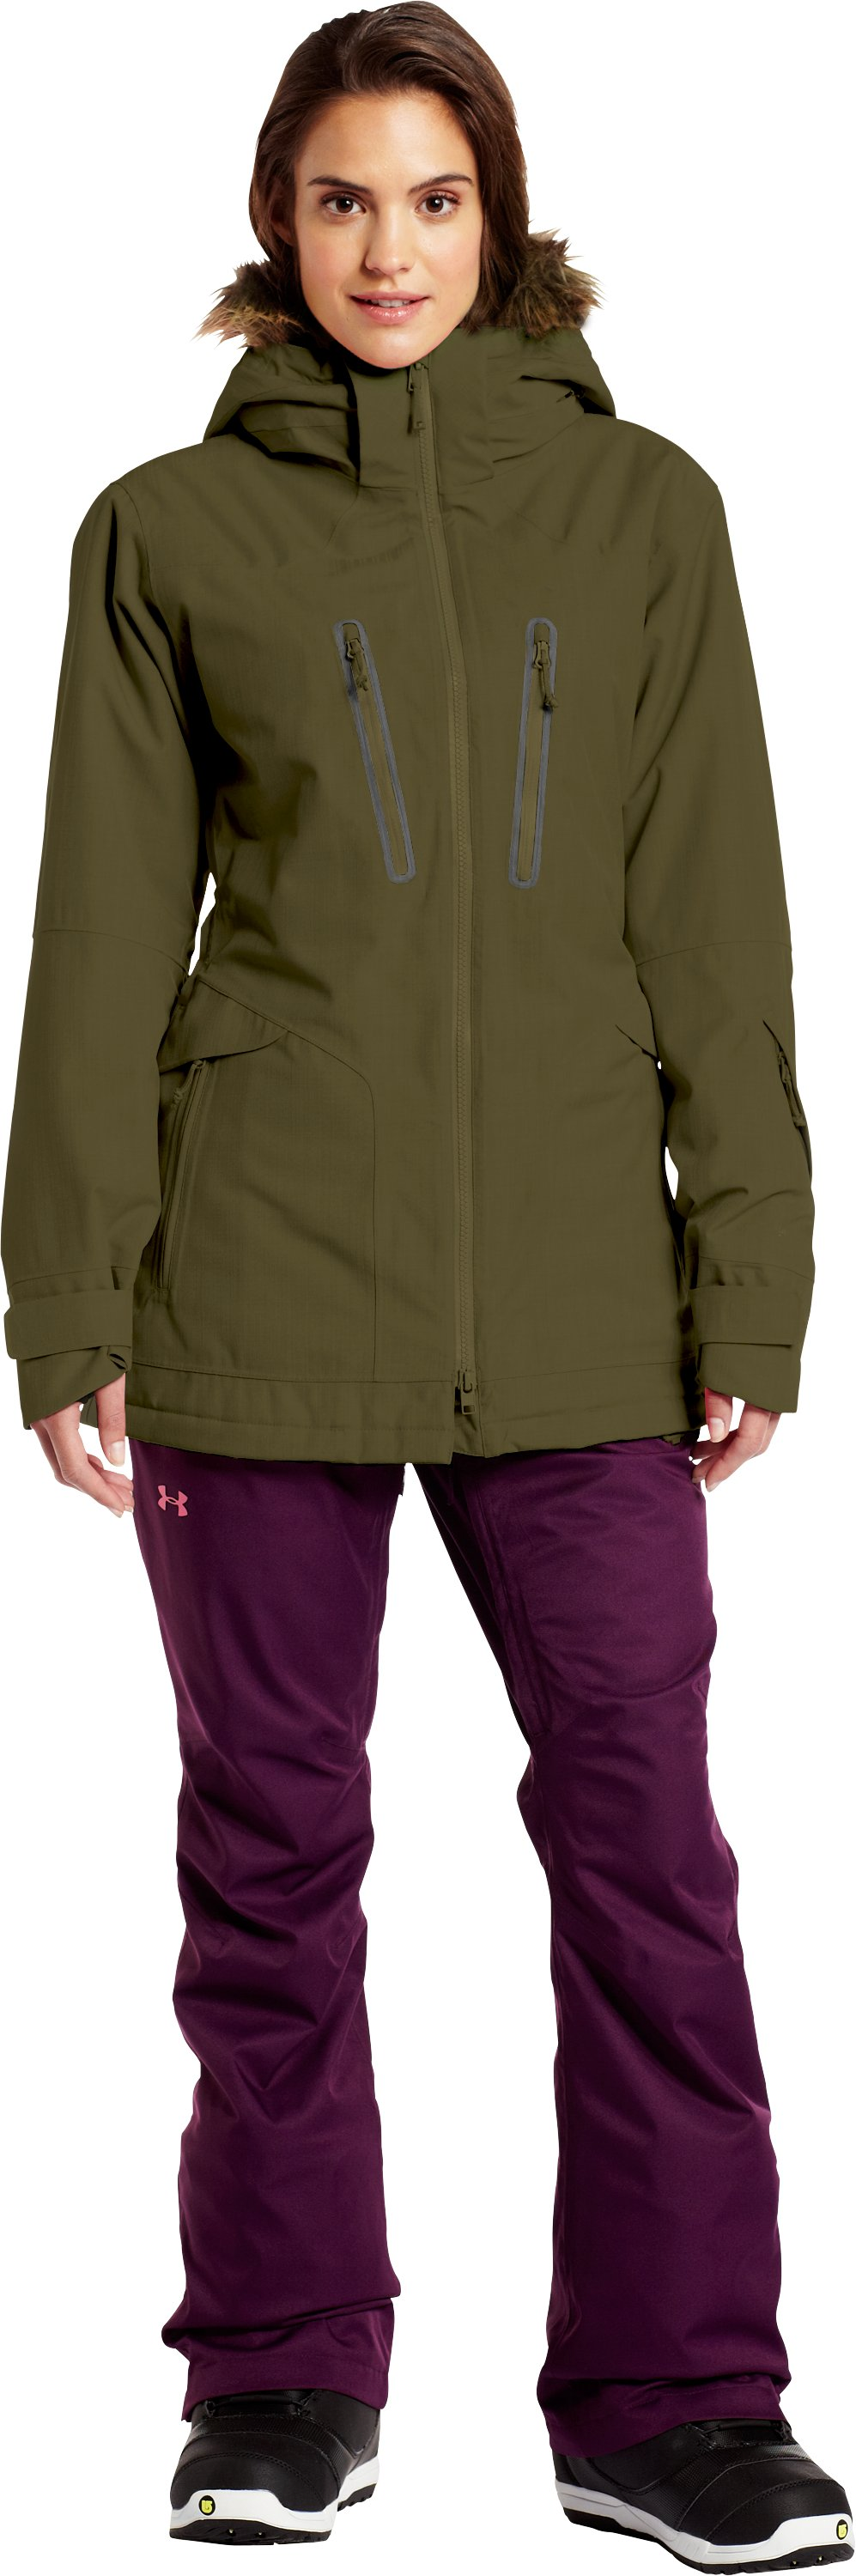 Women's ColdGear® Infrared Cleopatra Jacket, GREENHEAD, zoomed image